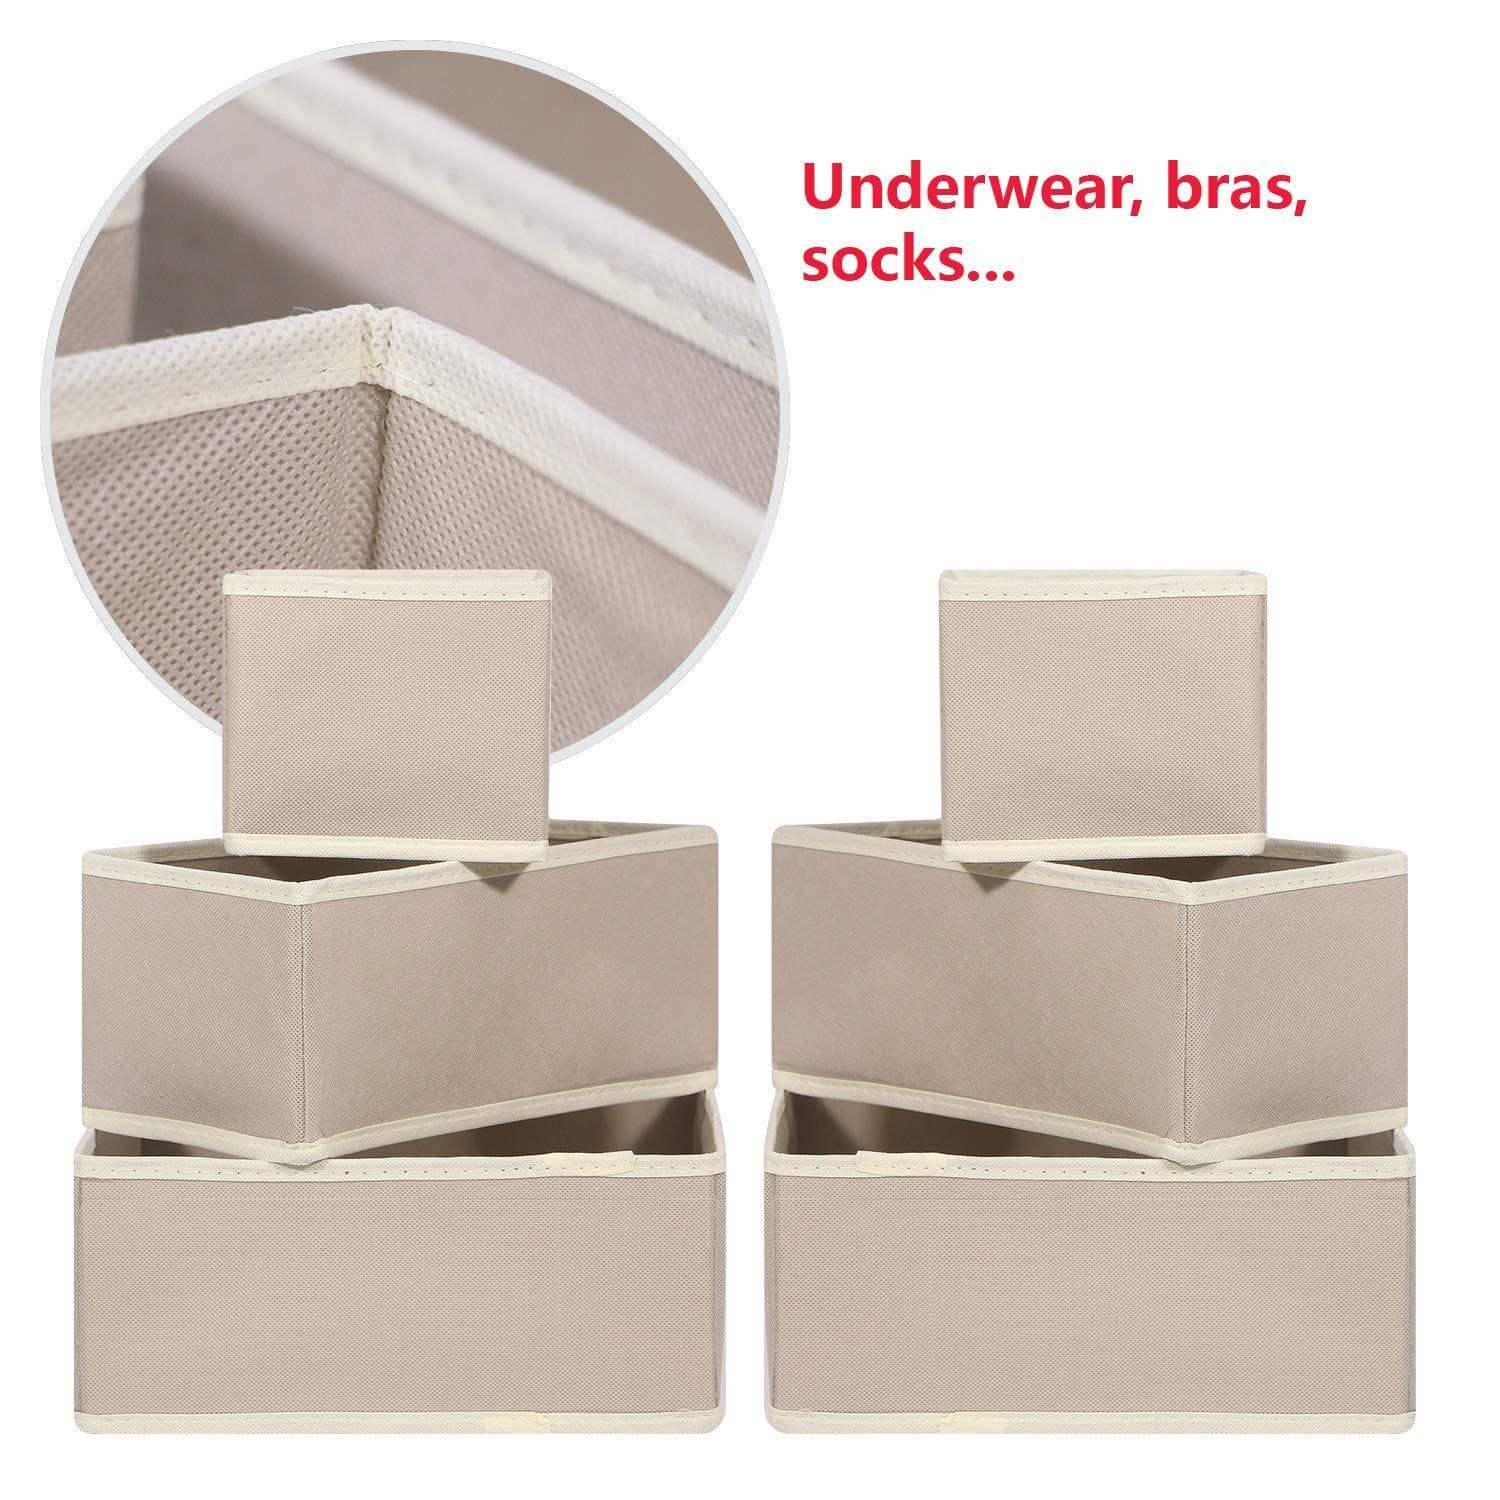 Great diommell 6 pack foldable cloth storage box closet dresser drawer organizer fabric baskets bins containers divider with drawers for clothes underwear bras socks lingerie clothing